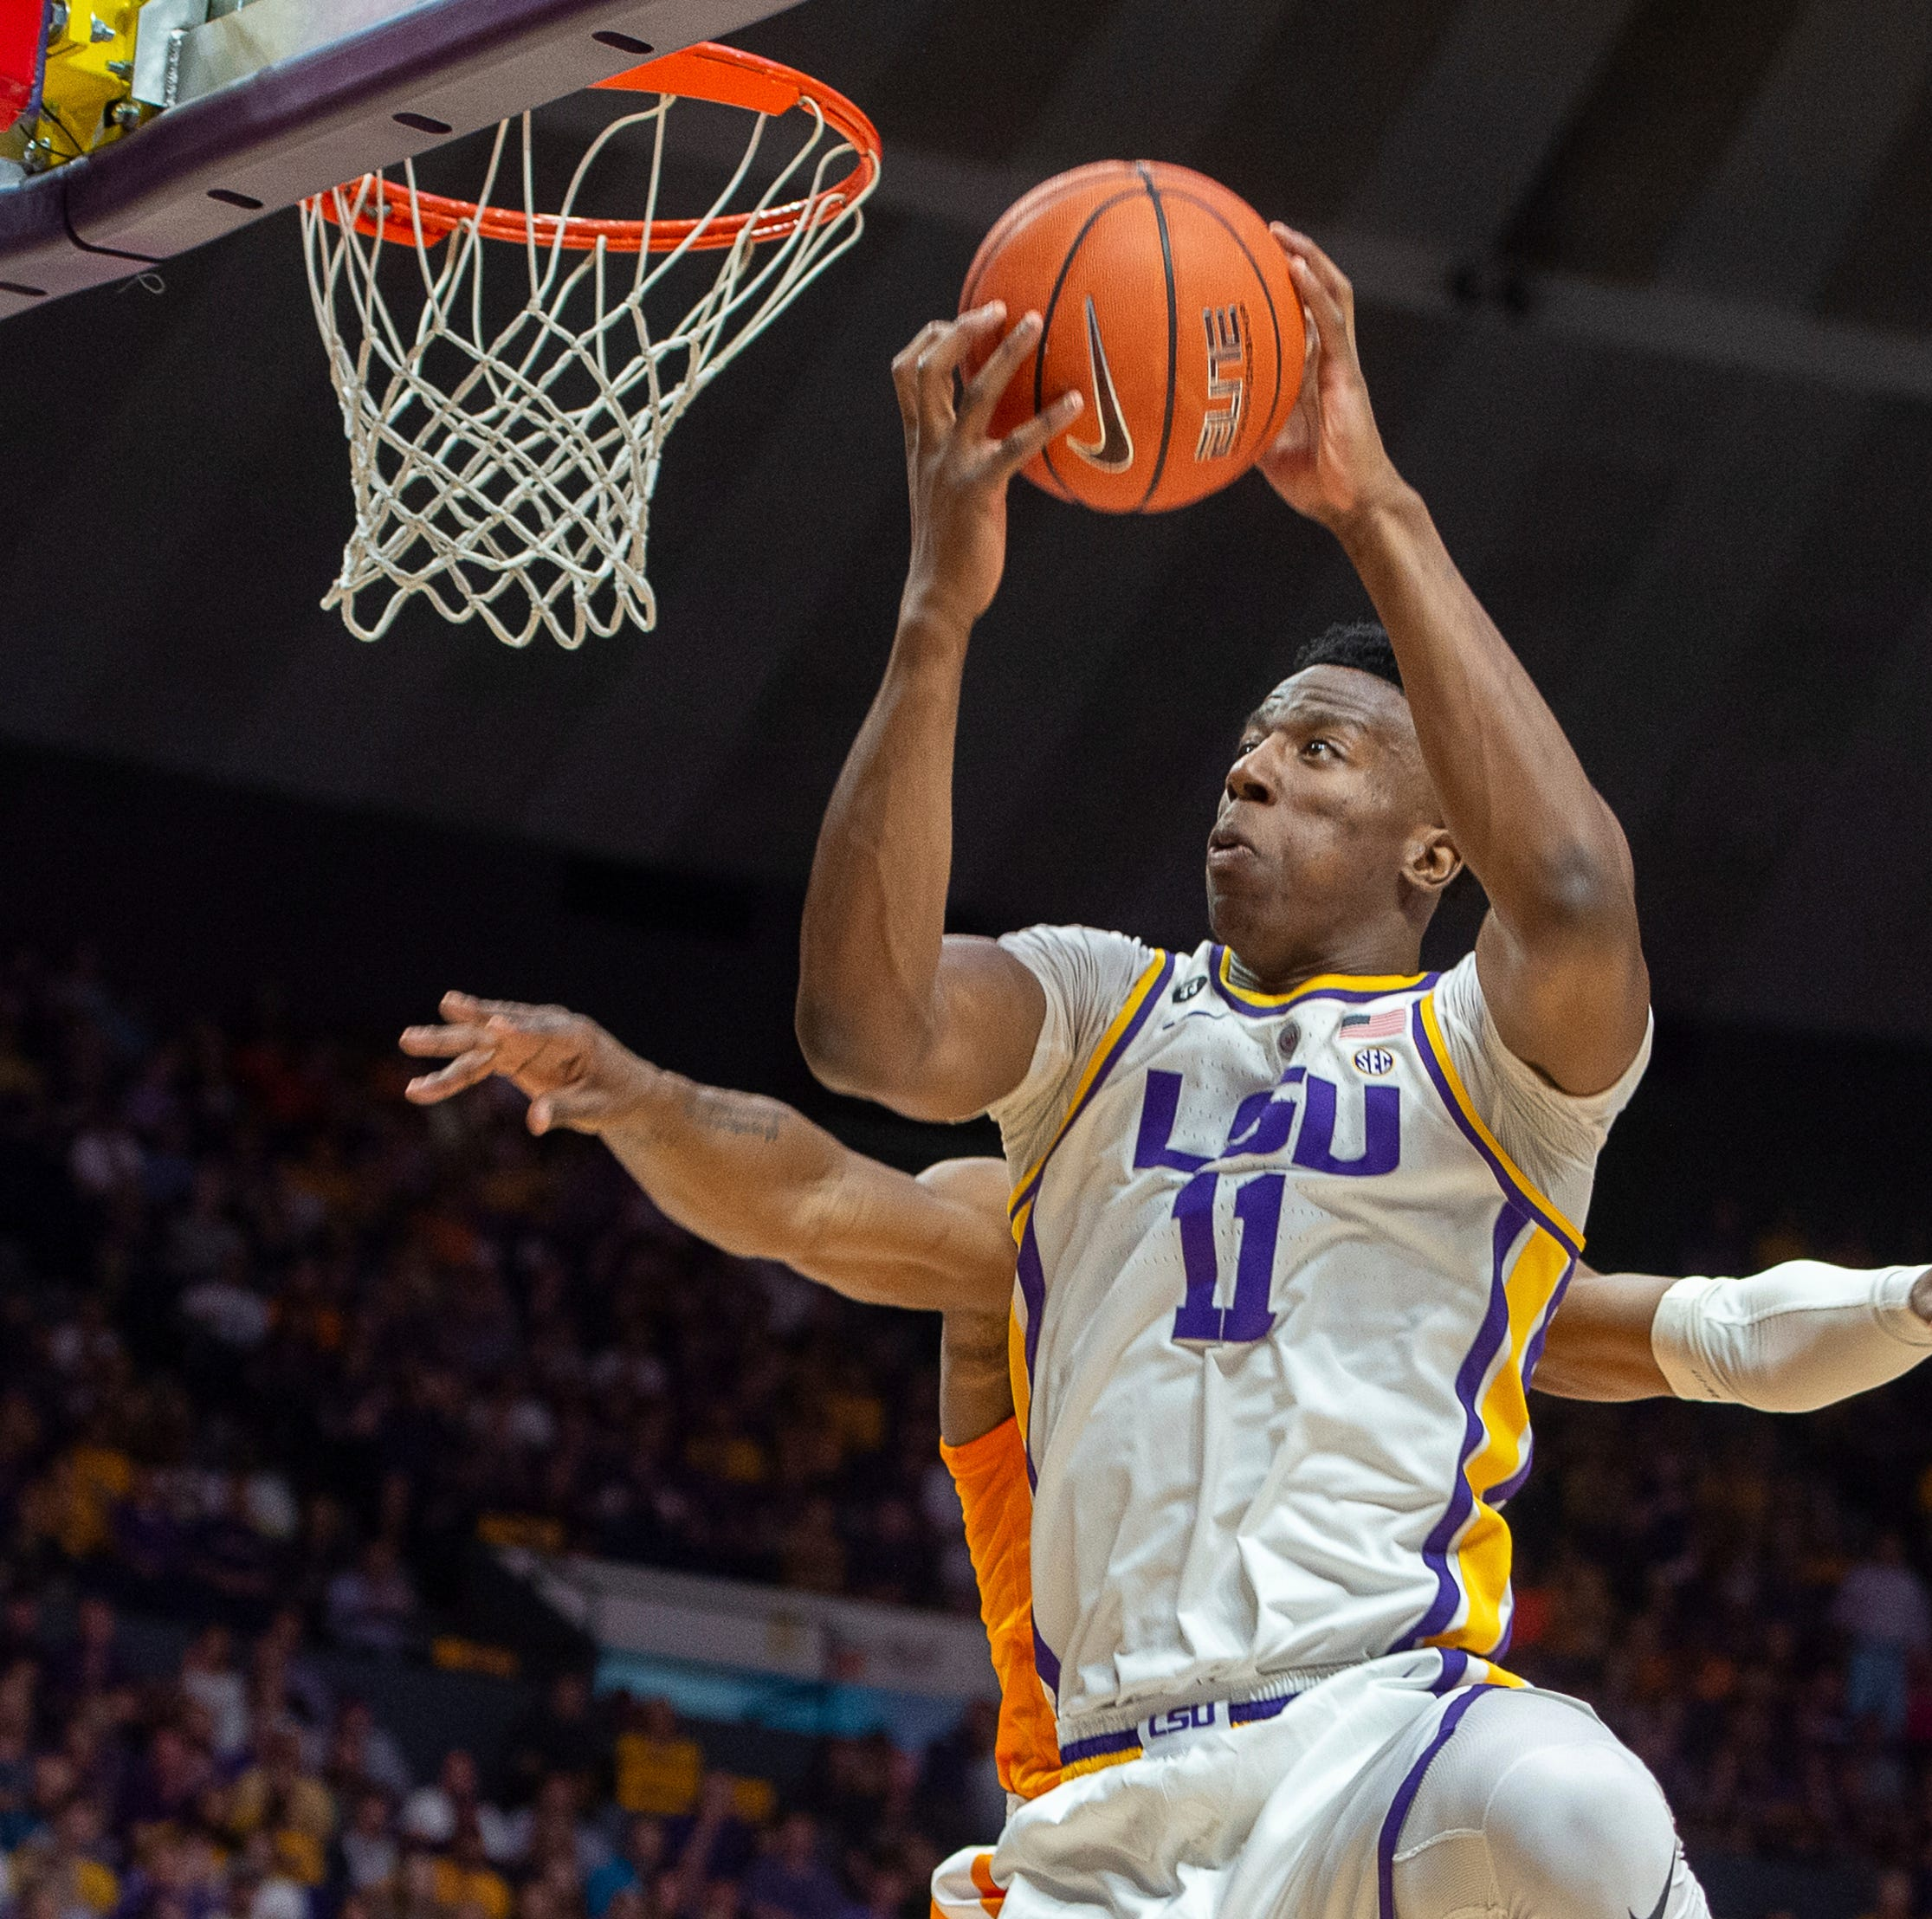 LSU had a Plan B ready on Friday, but had to go to Plan C Saturday to beat No. 5 Tennessee